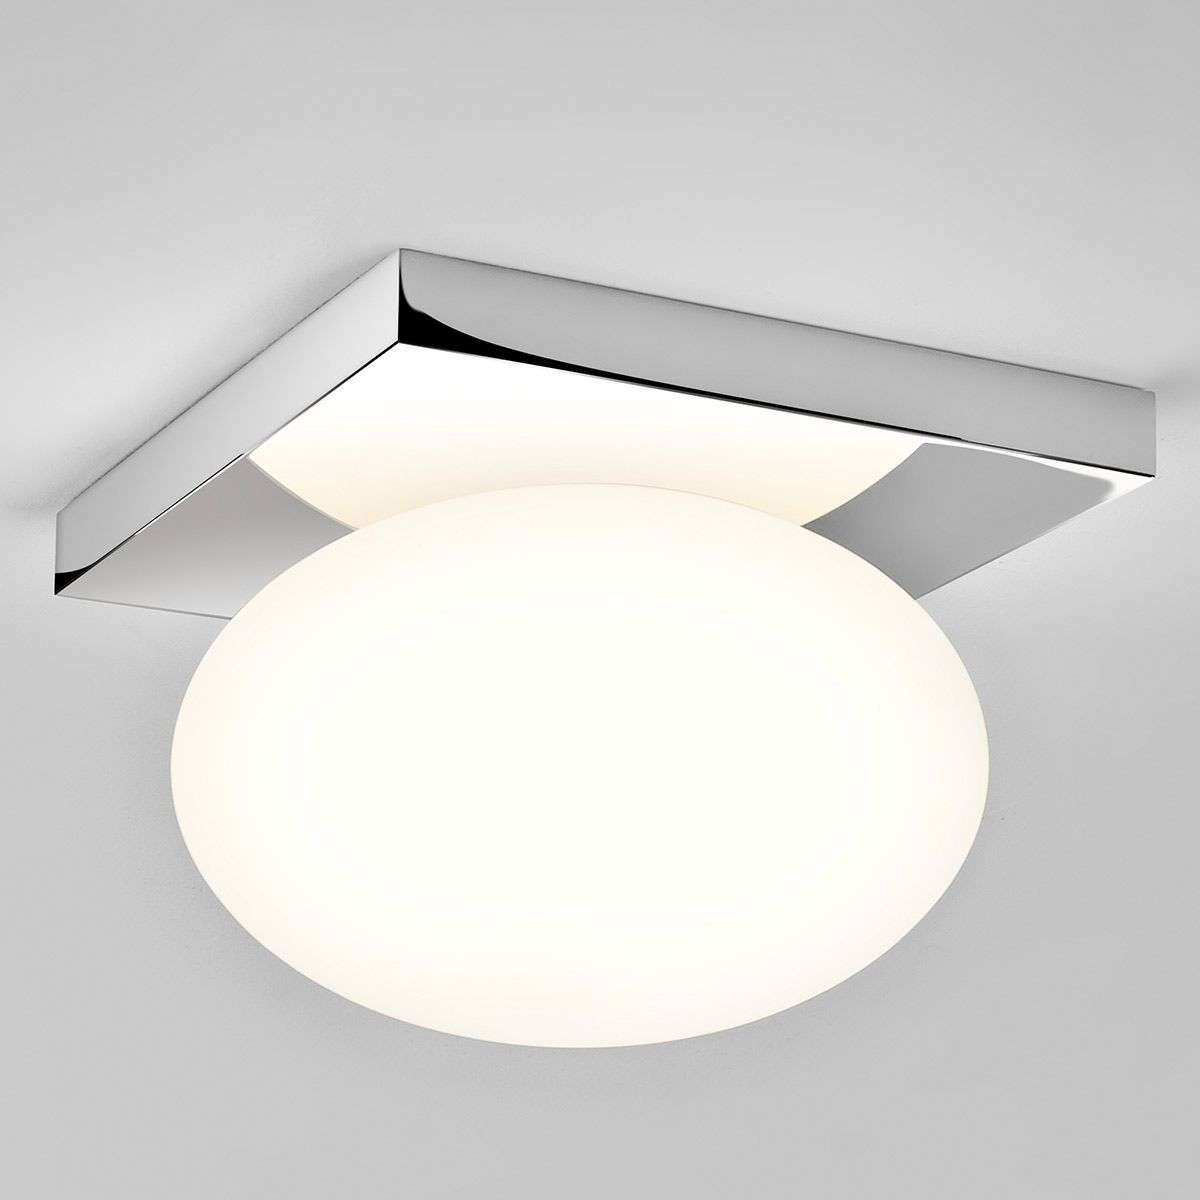 Castiro Ceiling Light Unusual-1020393-32